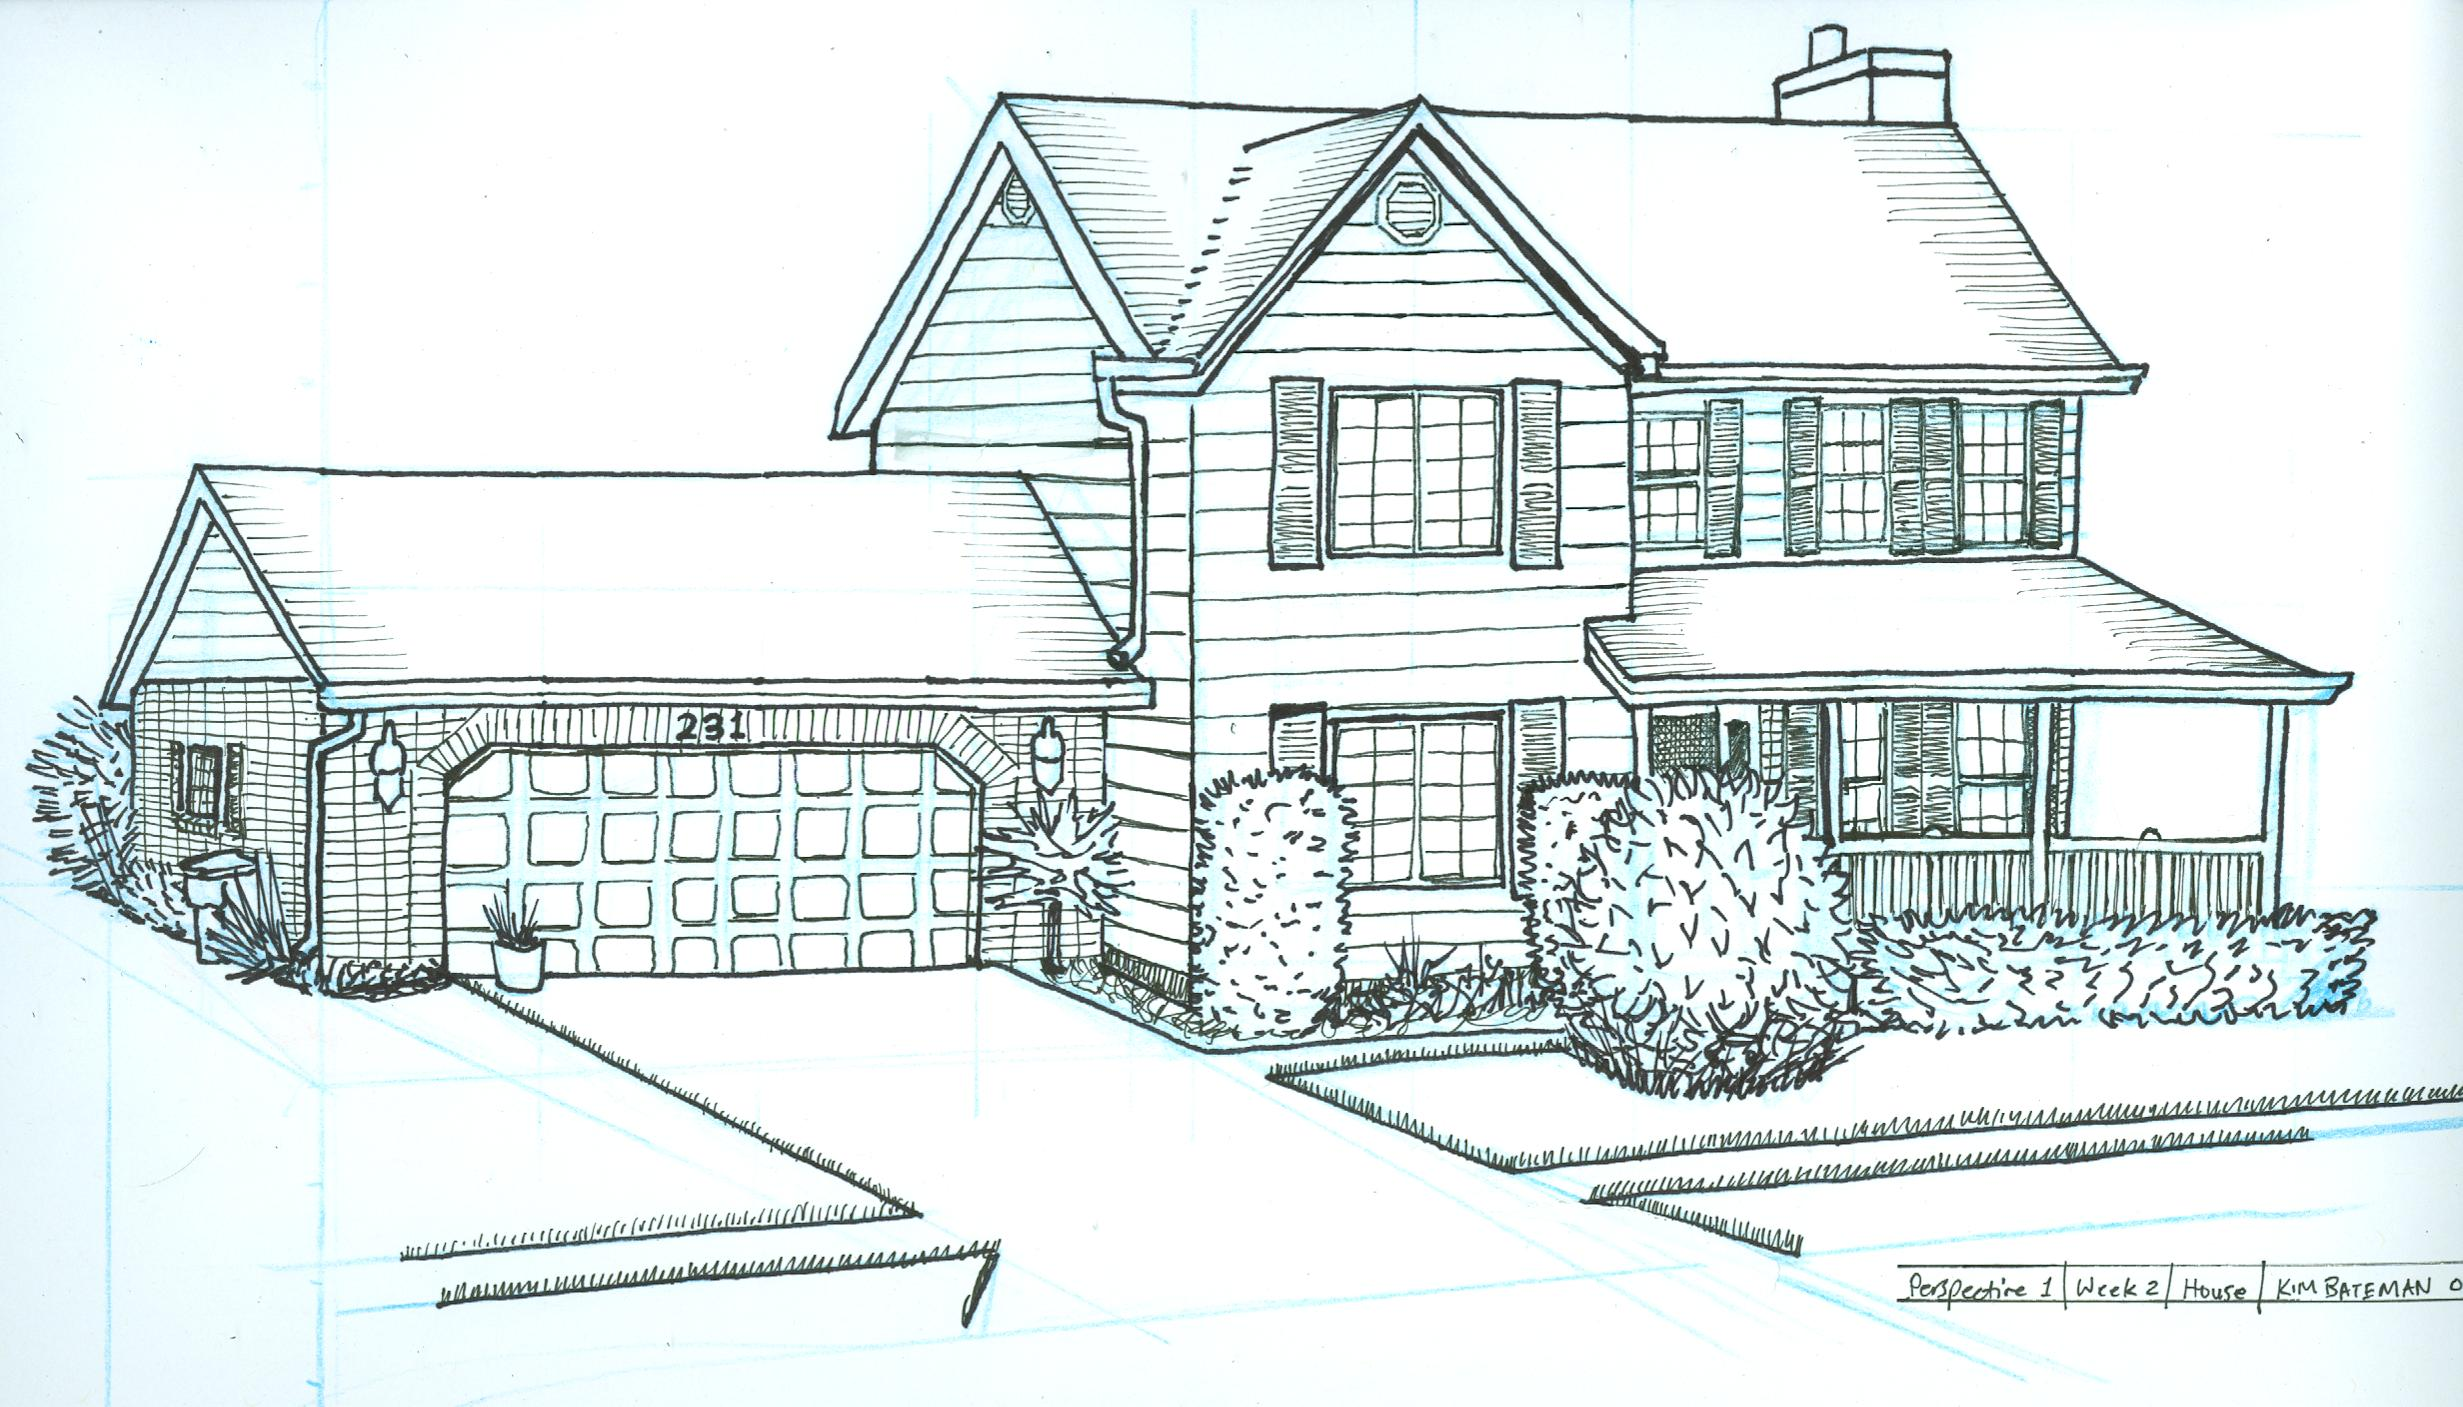 2463x1407 Perspective Drawing House